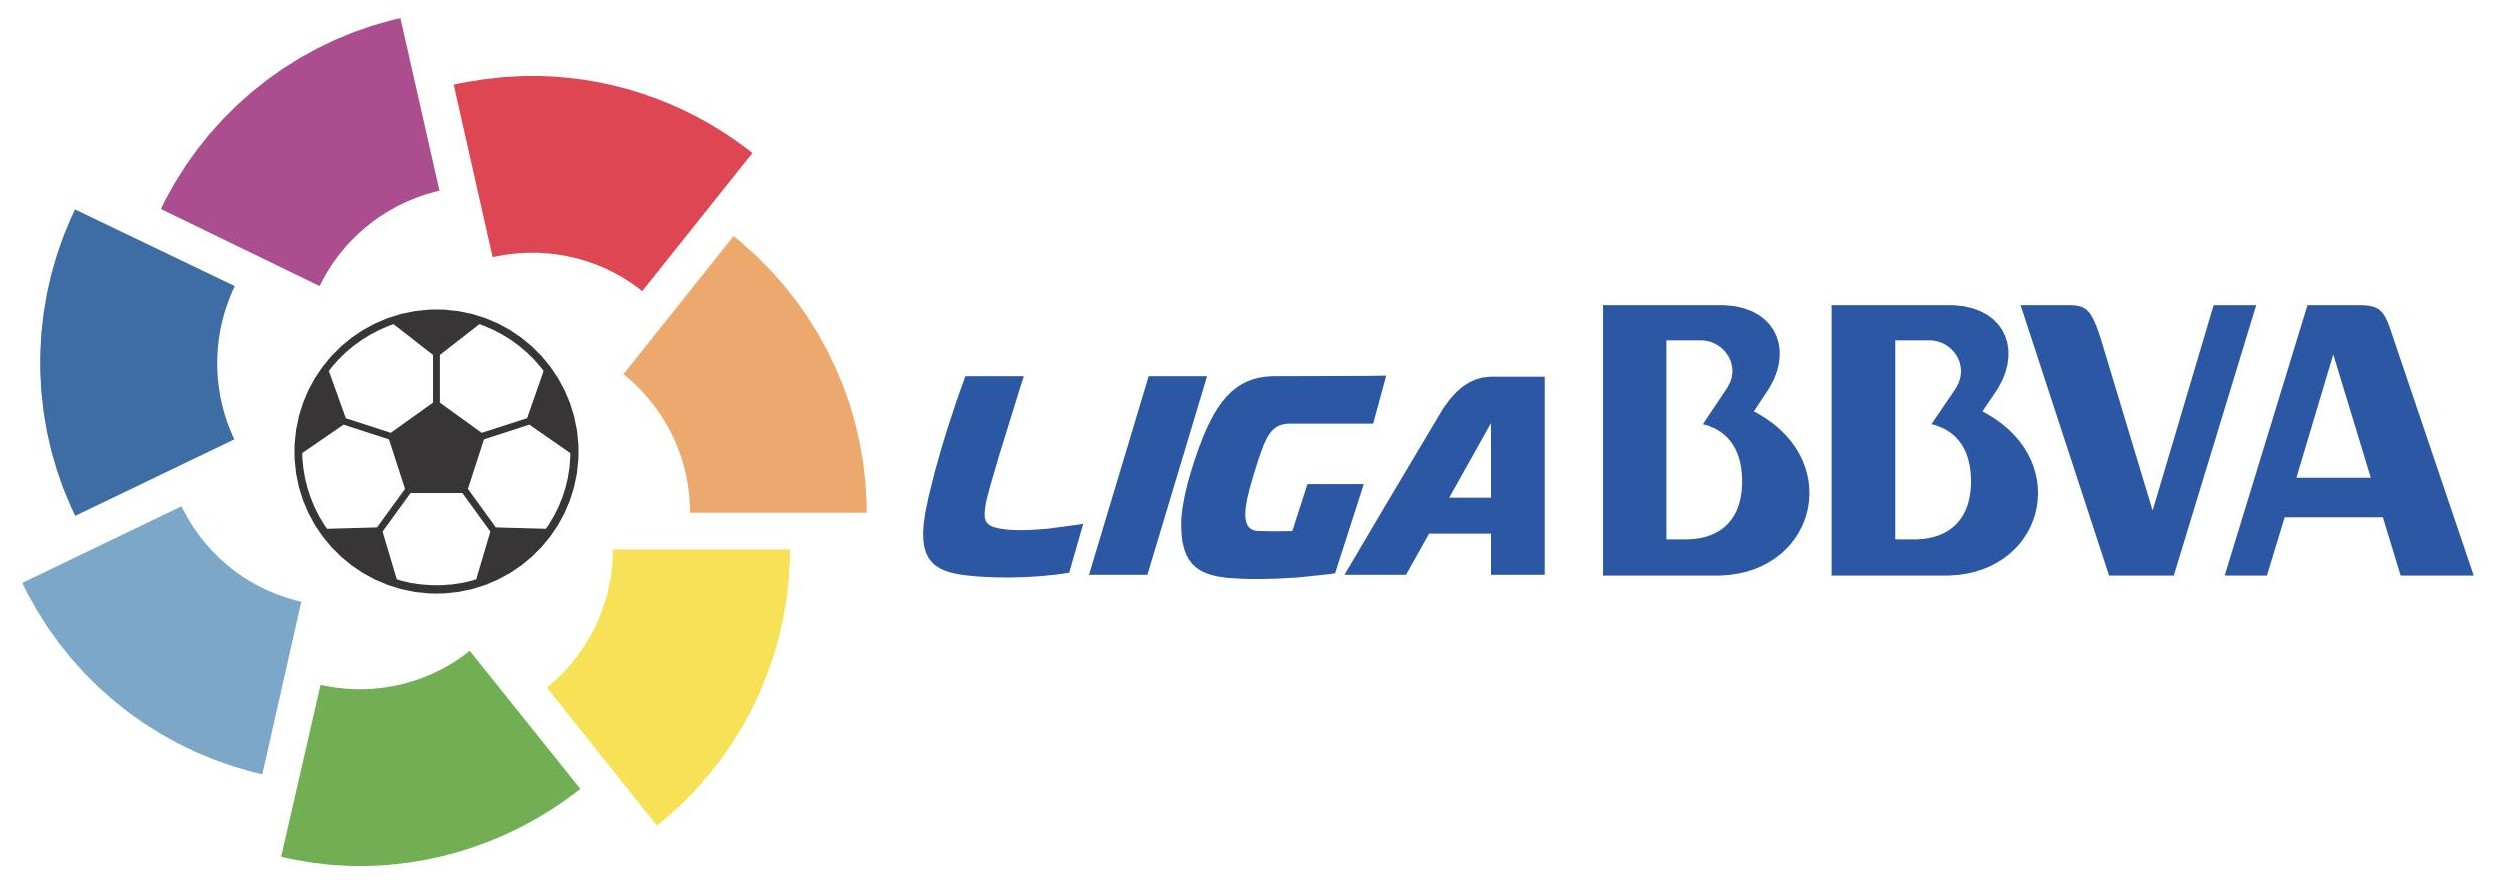 La Liga Round 27 Review and Video Highlights